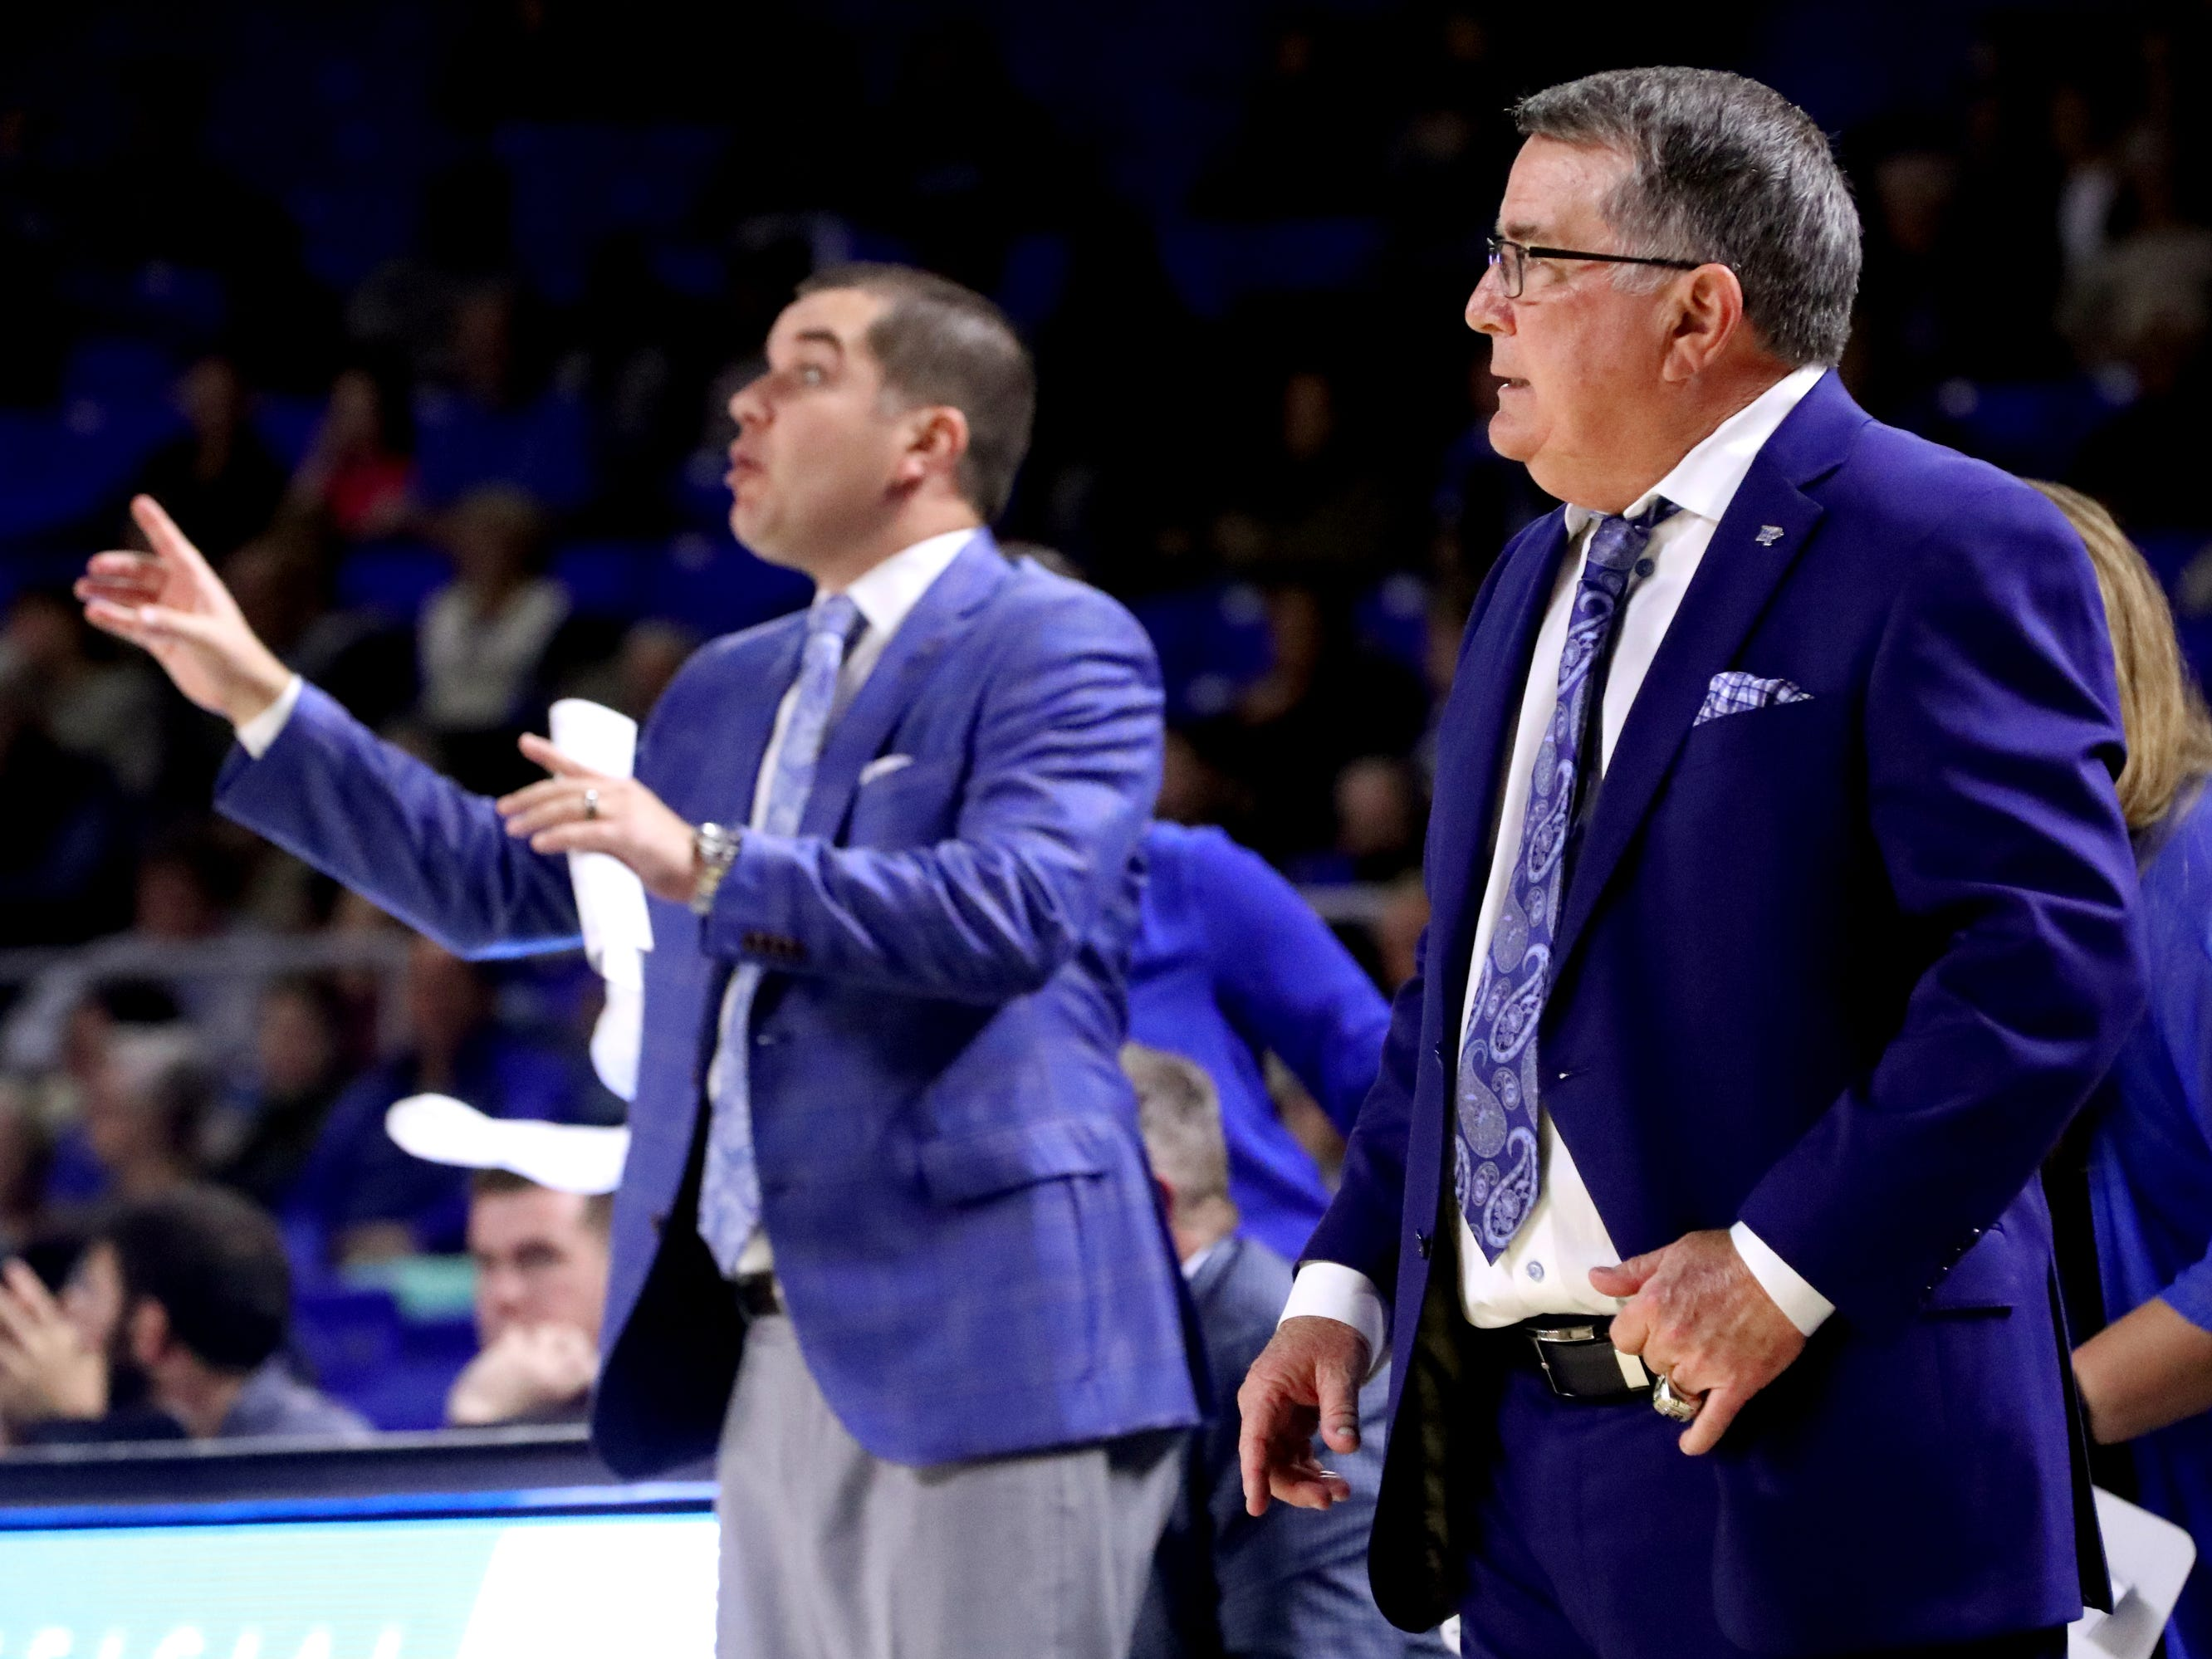 MTSU's head Coach Rick Insell, right, watches the game from the sidelines as his son assistant Coach Matt Insell also coaches from the sidelines during the game against Vanderbilt at MTSU on Friday, Nov. 8, 2018.